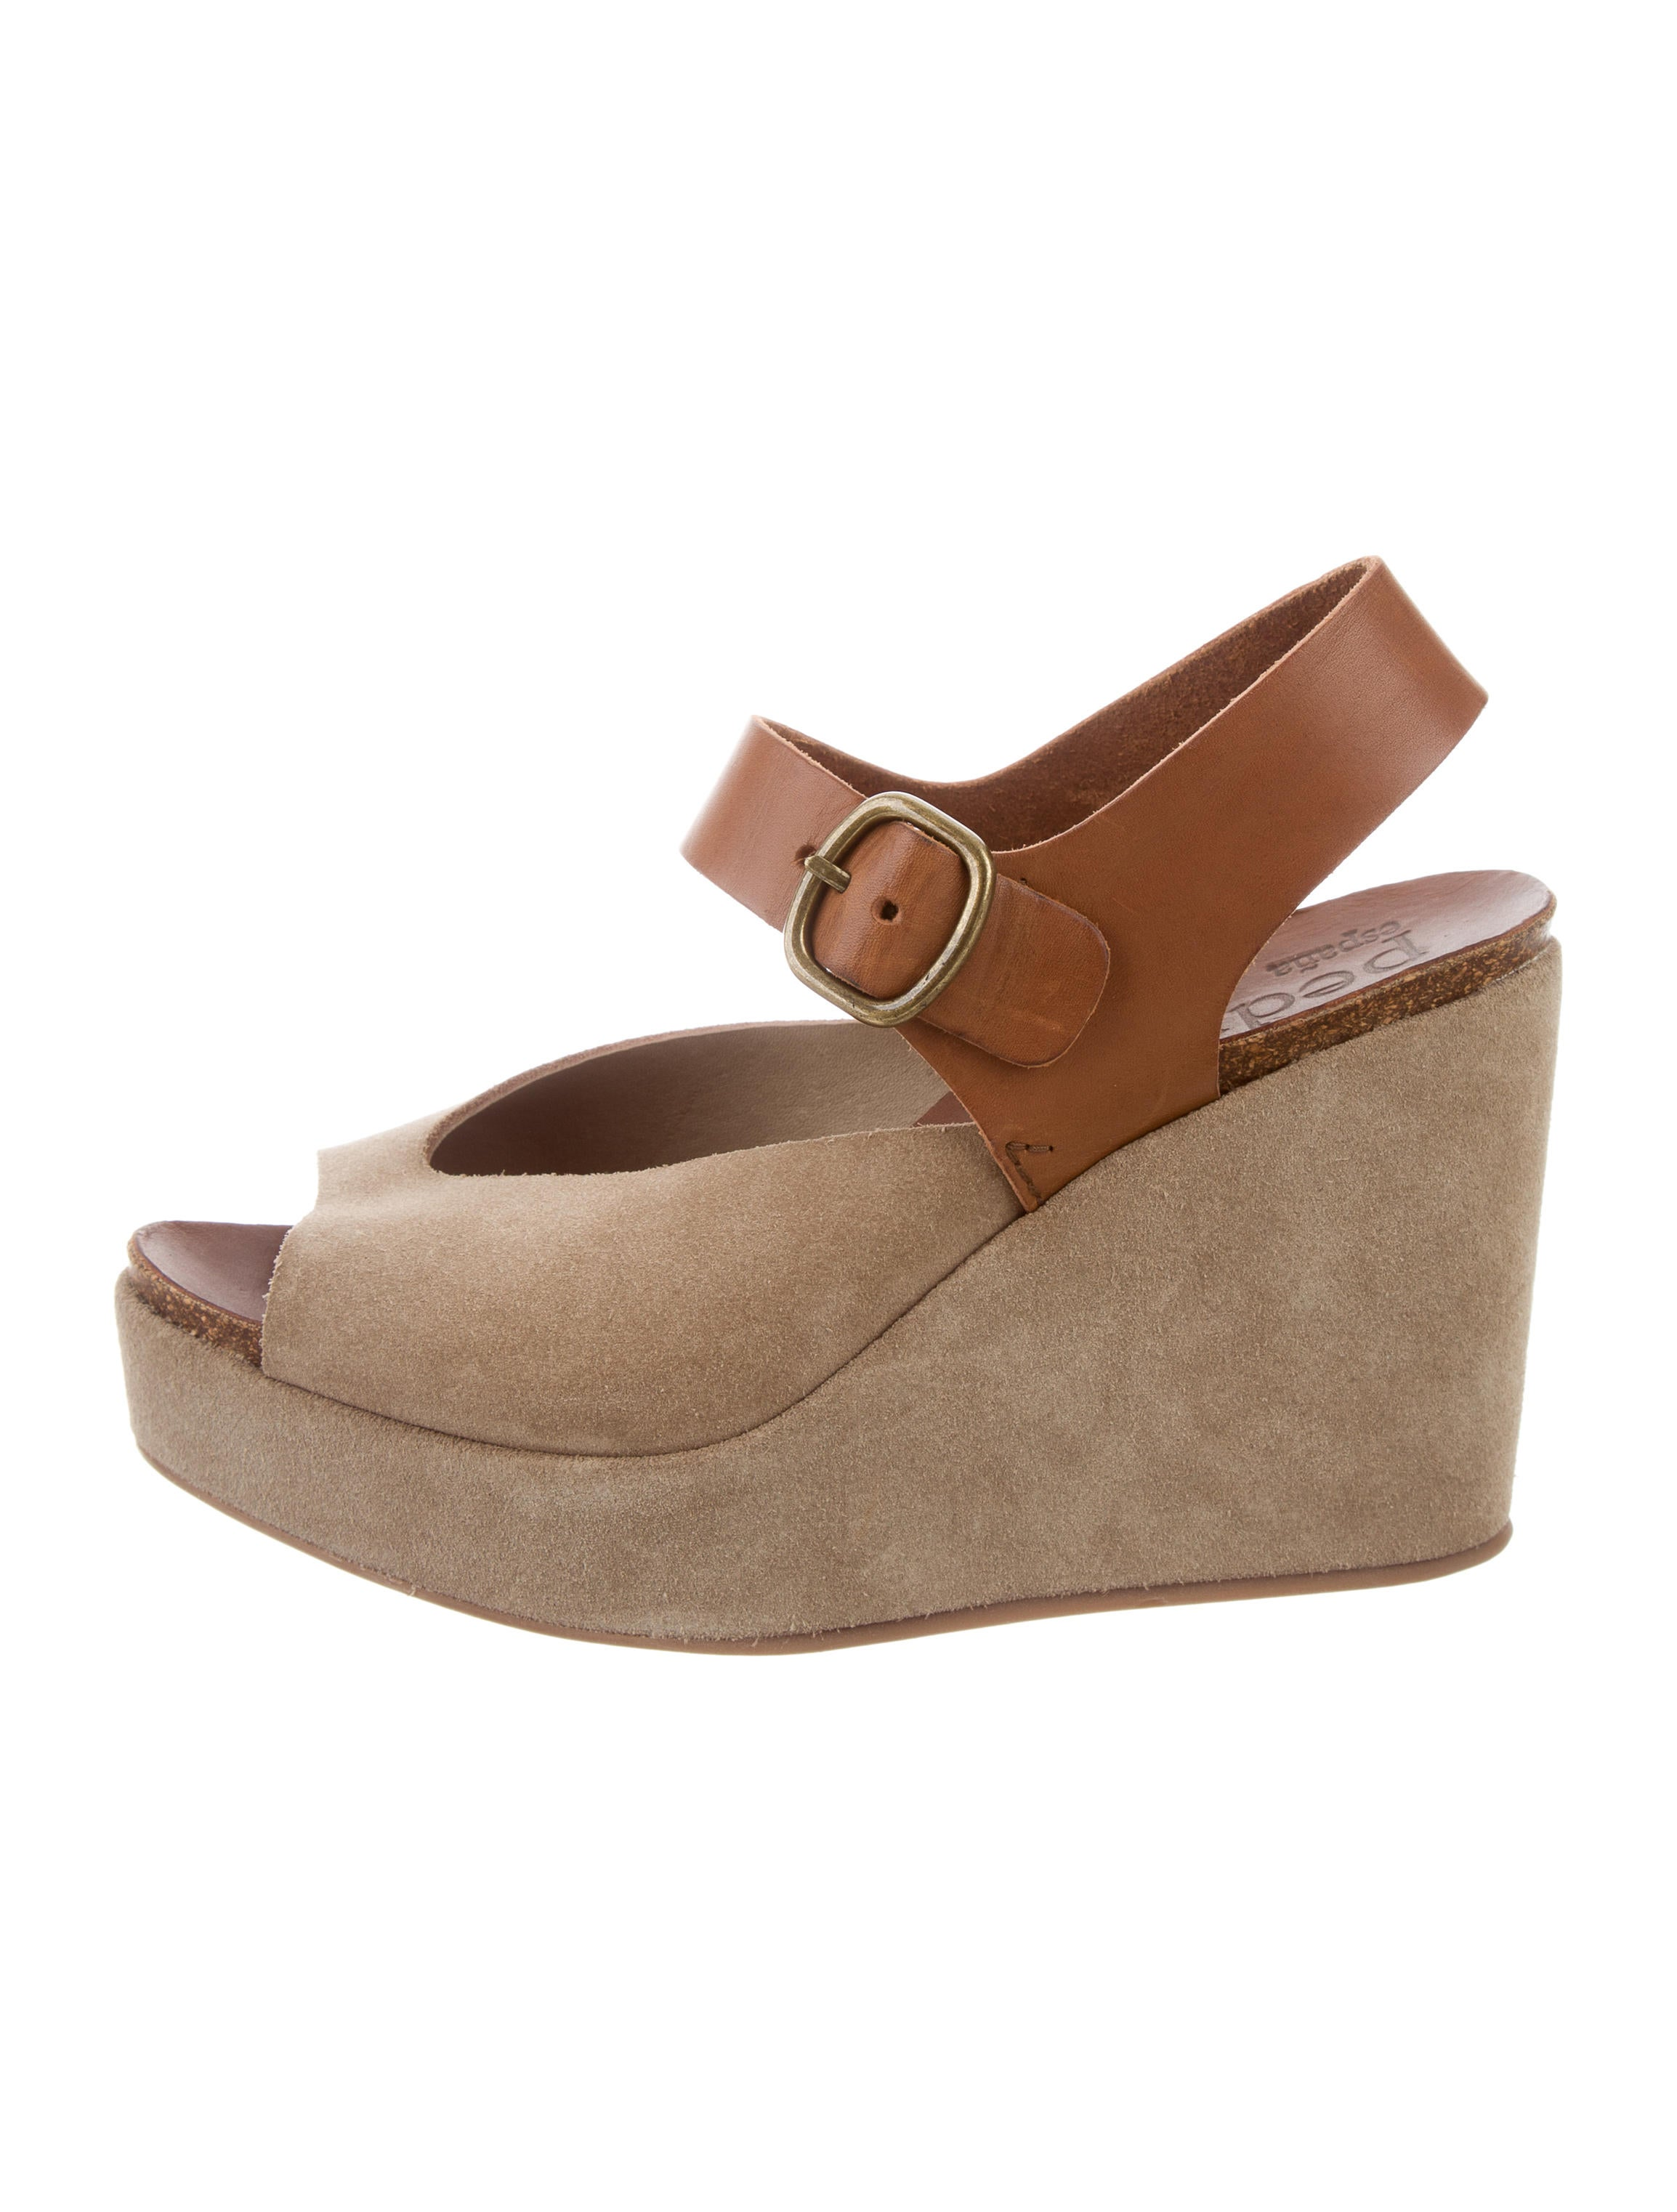 pedro garcia suede wedge sandals shoes ped24853 the